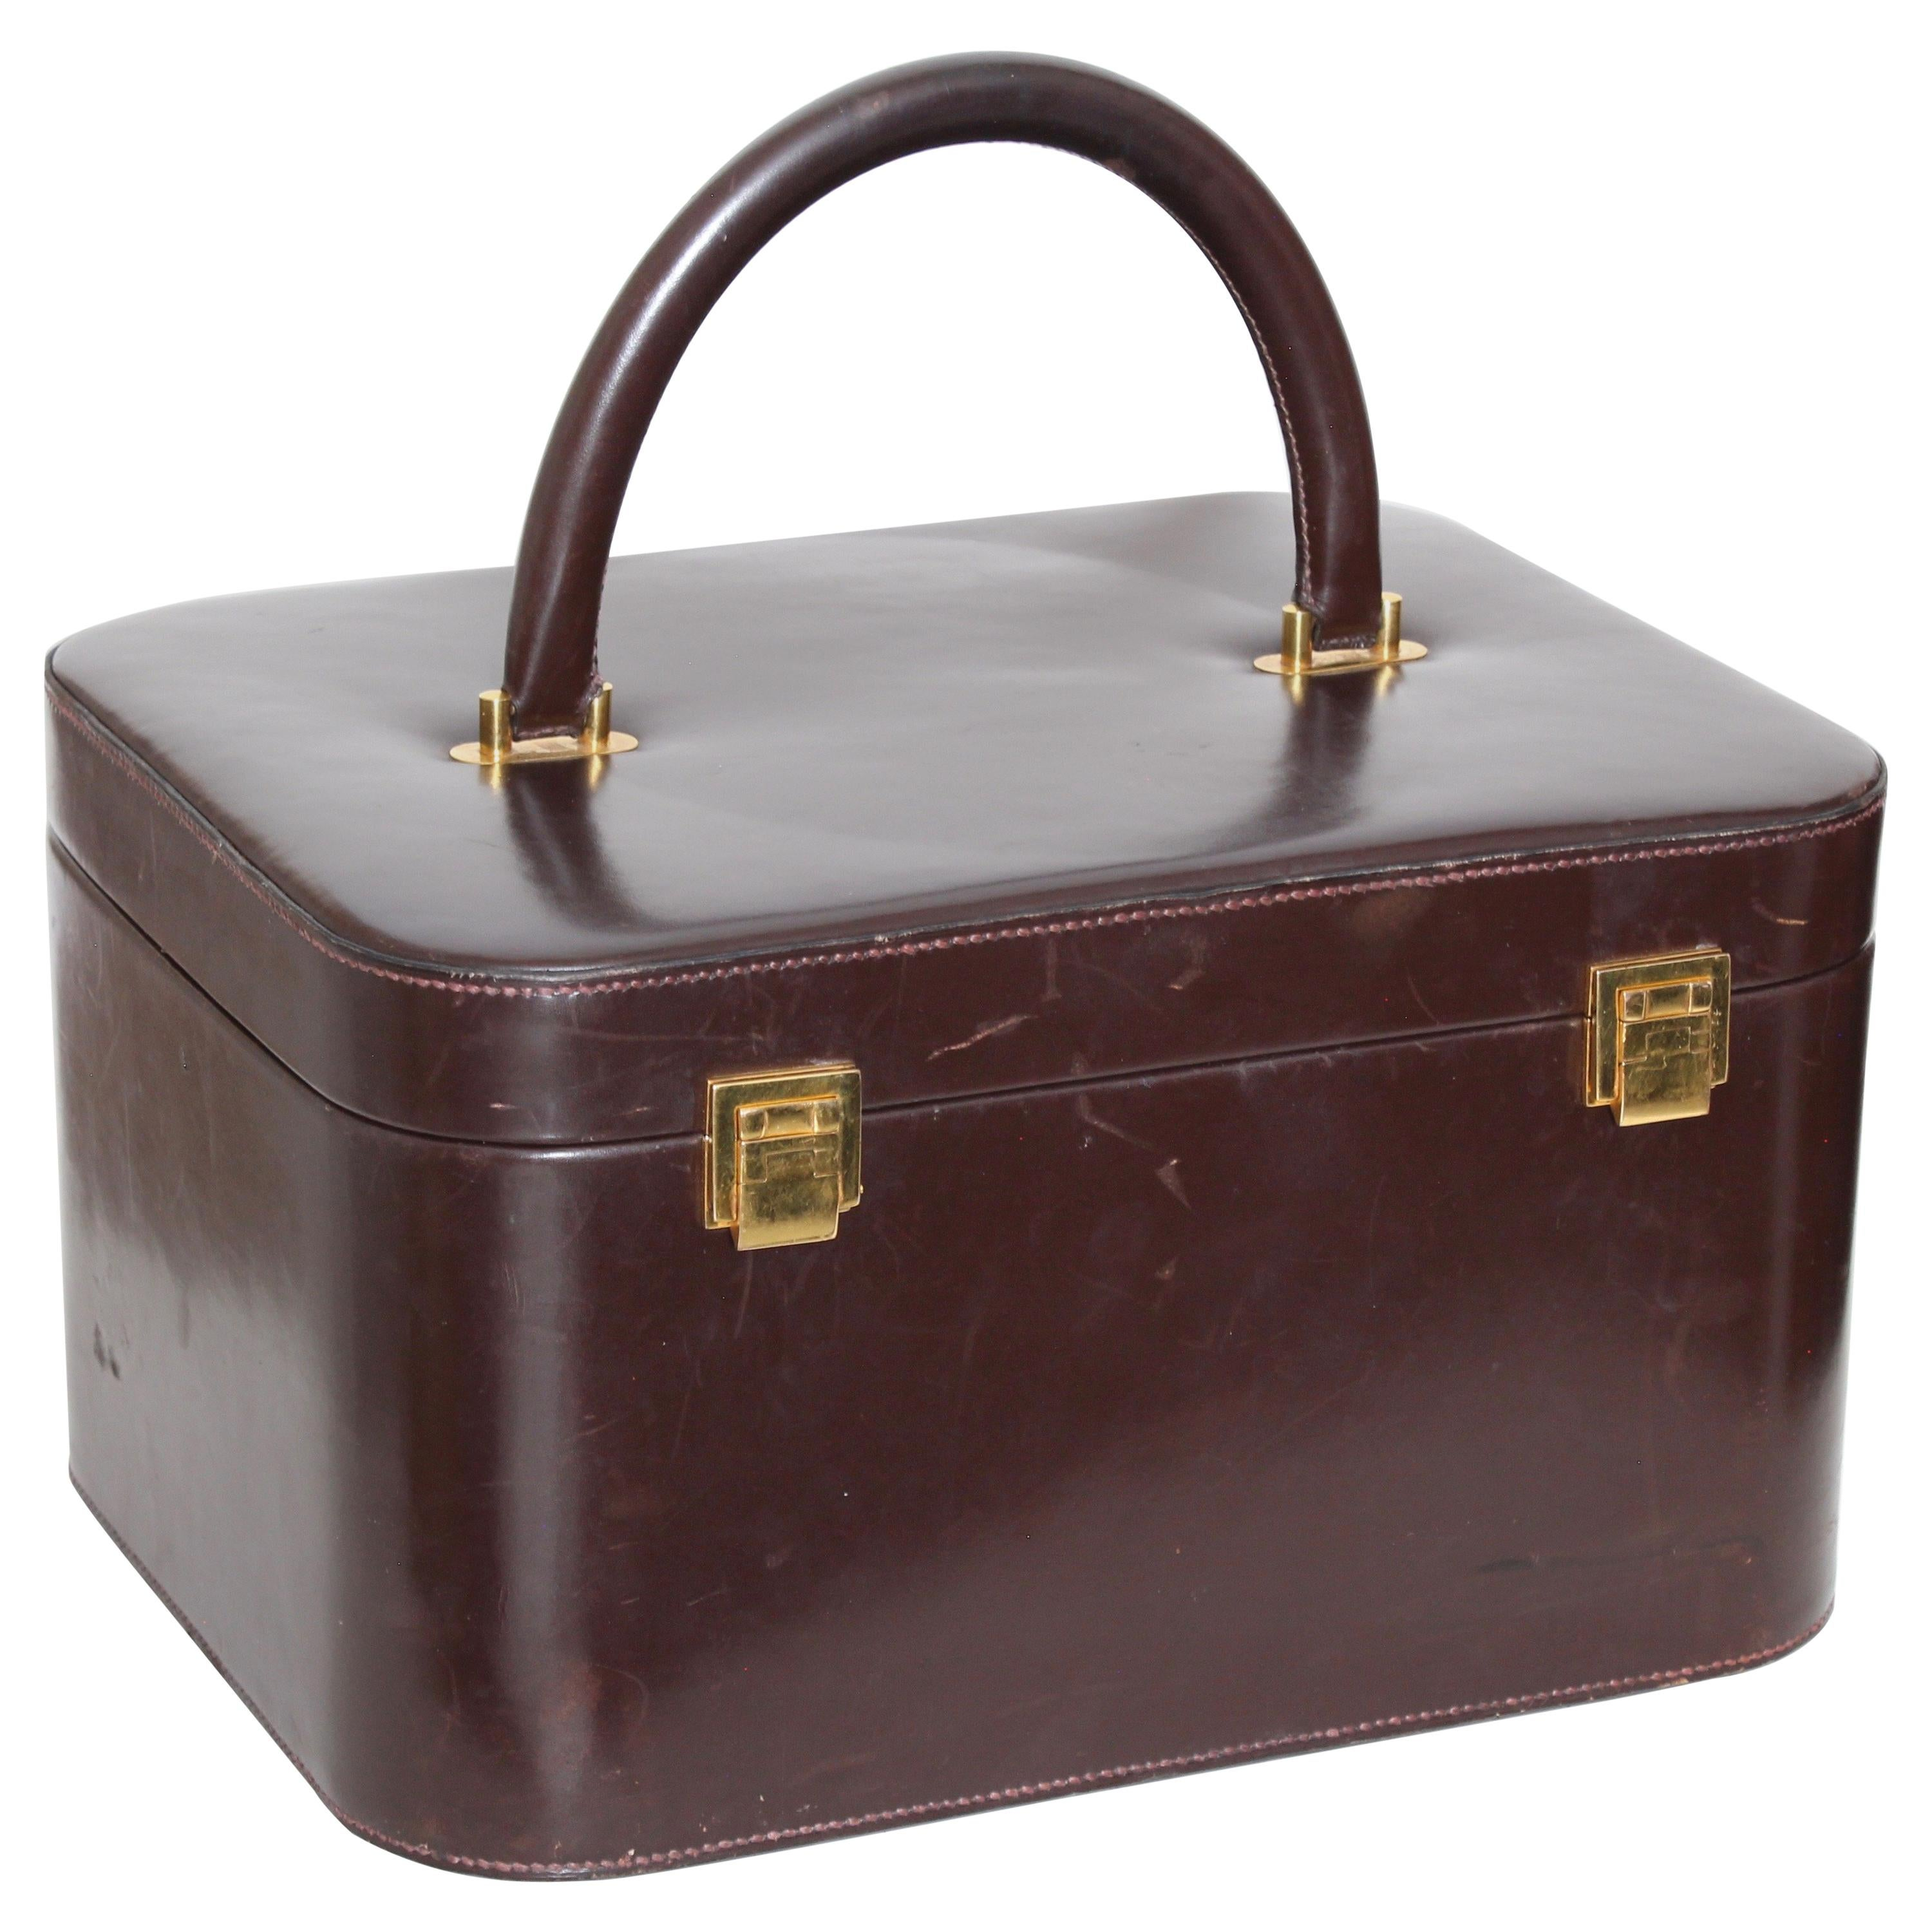 e7b70588f35e Rare Hermes Box Leather Train Case Vanity with Mirror Travel Carry On Bag  1950s at 1stdibs